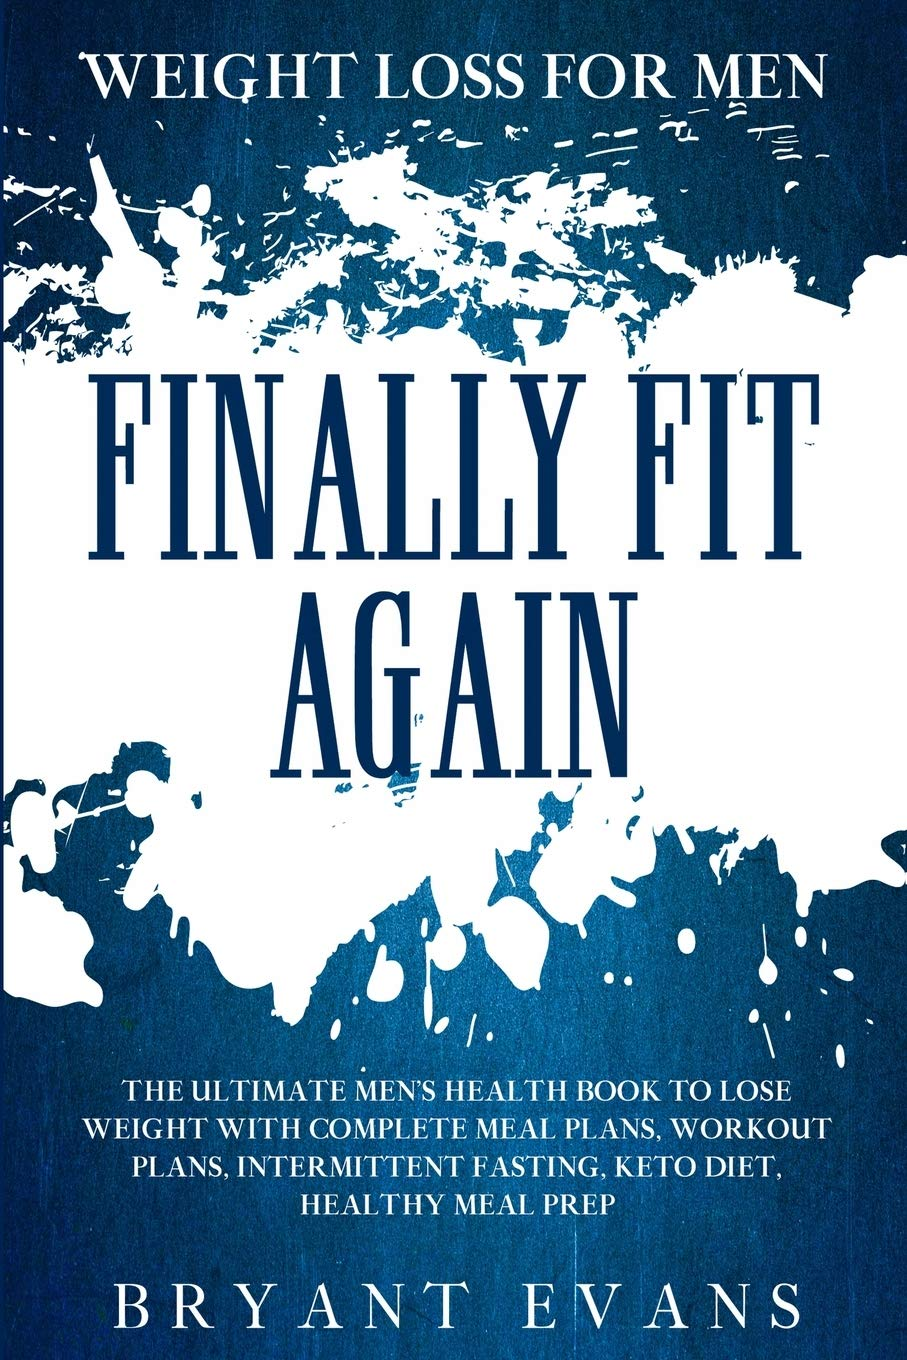 Weight Loss For Men: FINALLY FIT AGAIN - The Ultimate Men's Health Book To Lose Weight With Complete Meal Plans, Workout Plans, Intermittent Fasting, Keto Diet, Healthy Meal Prep 1